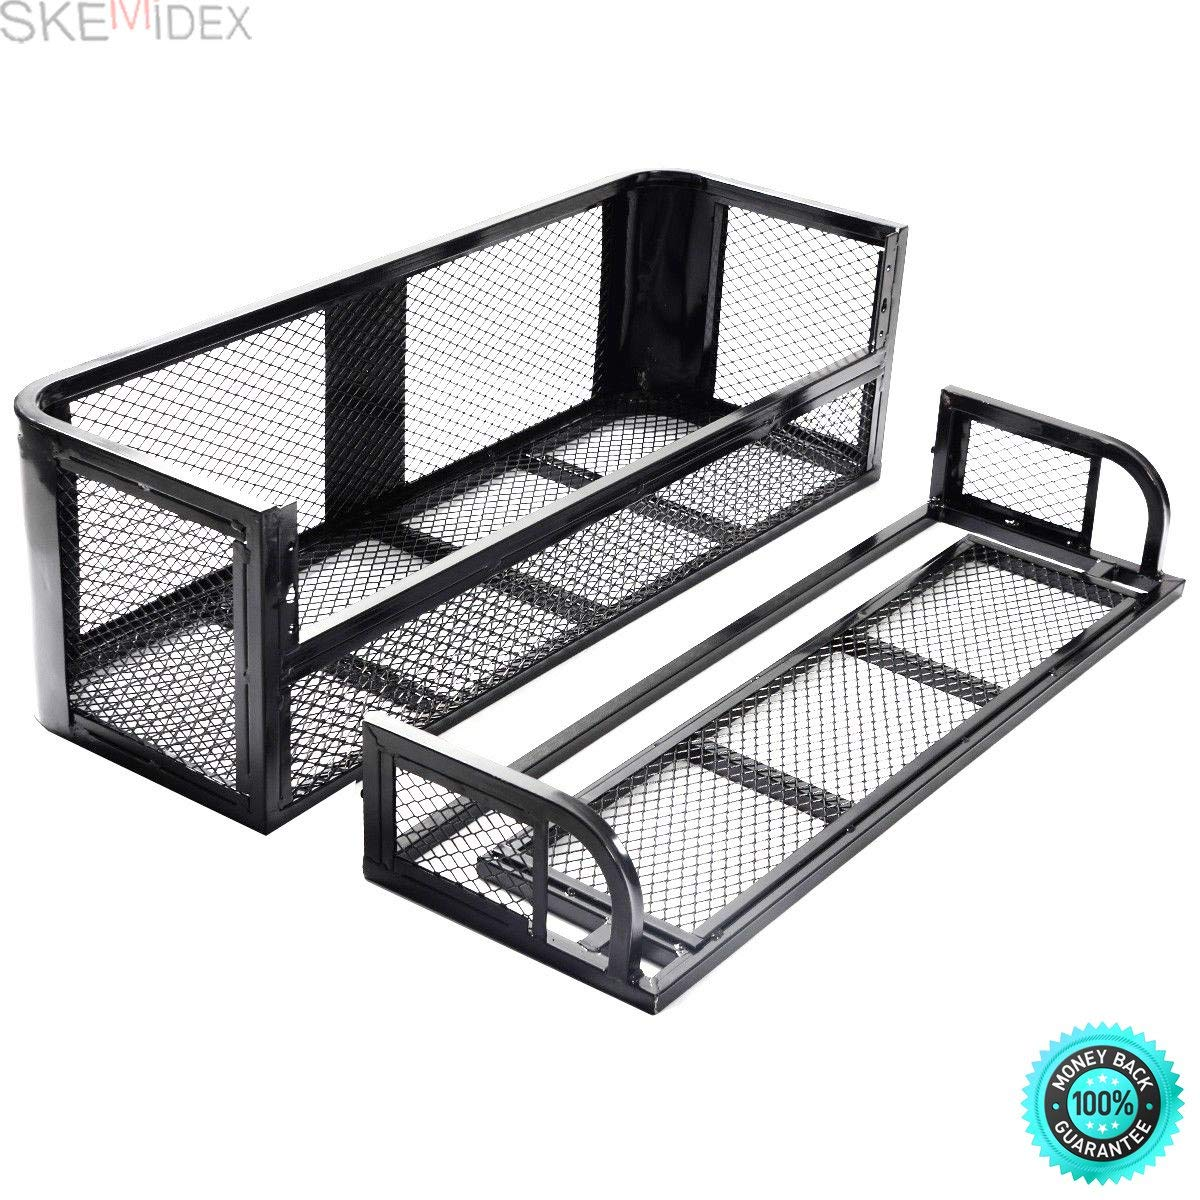 Cheap Front Atv Cargo Box, find Front Atv Cargo Box deals on line at